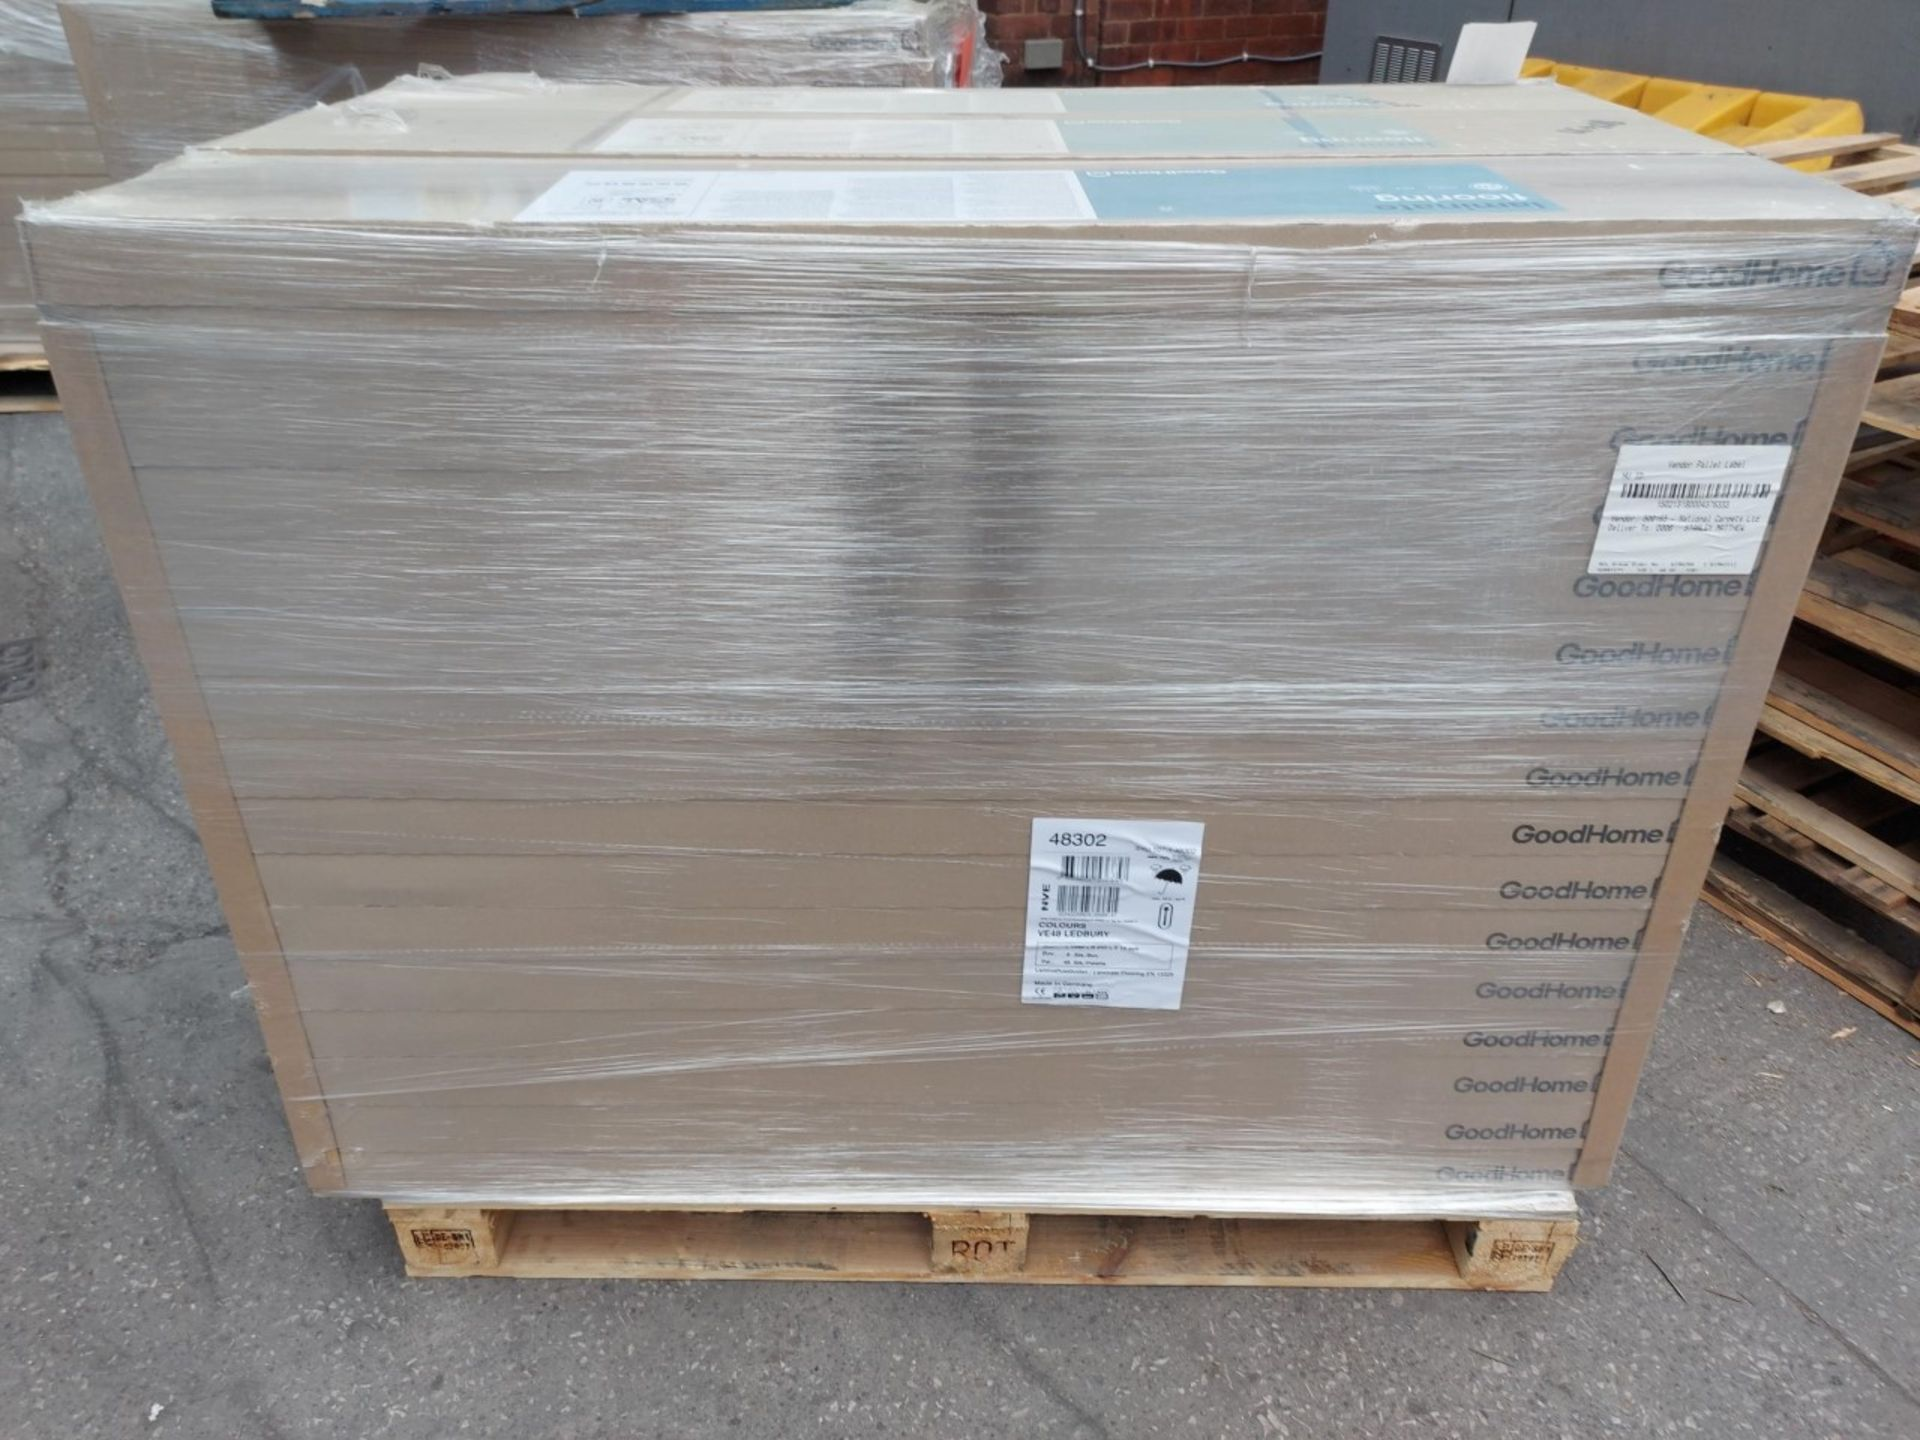 PALLET TO CONTAIN 24 NEW SEALED PACKS OF GOODHOME LEDBURY LIGHT BROWN OAK EFFECT 10MM LAMINATE - Image 2 of 5